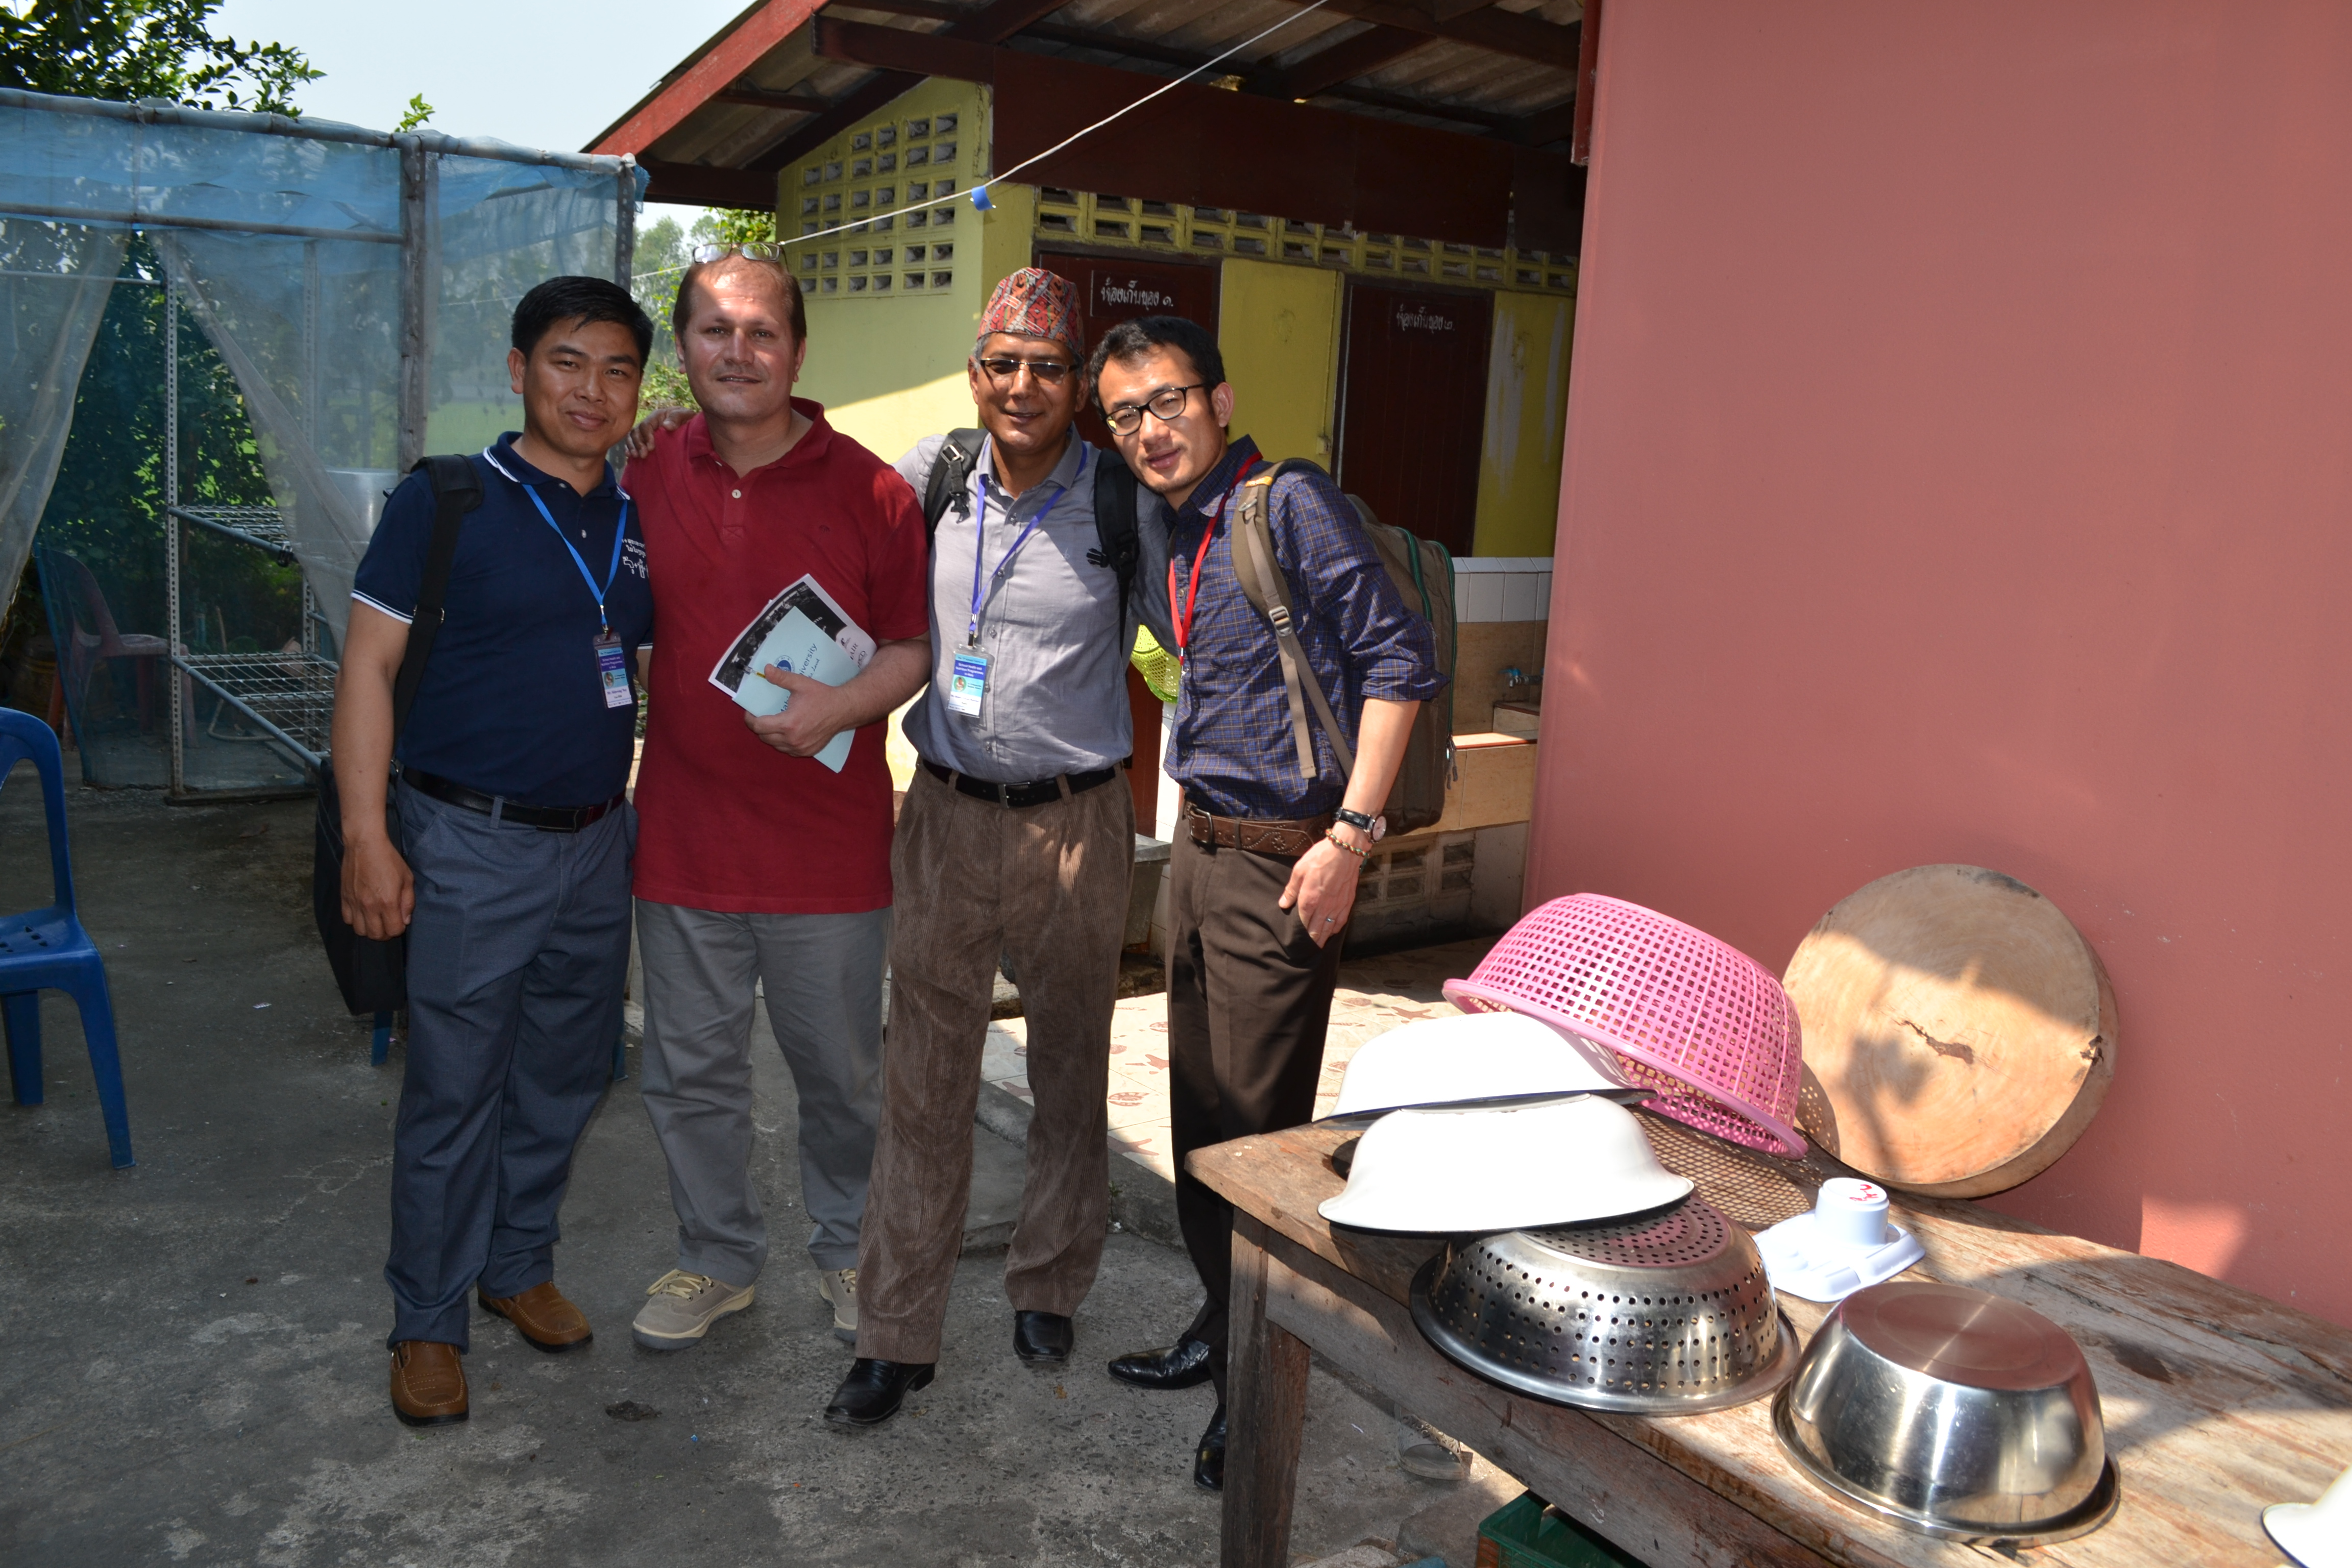 Bhutan's Sangay Thinley (R) on a school visit with colleagues from Nepal, Pakistan and Cambodia